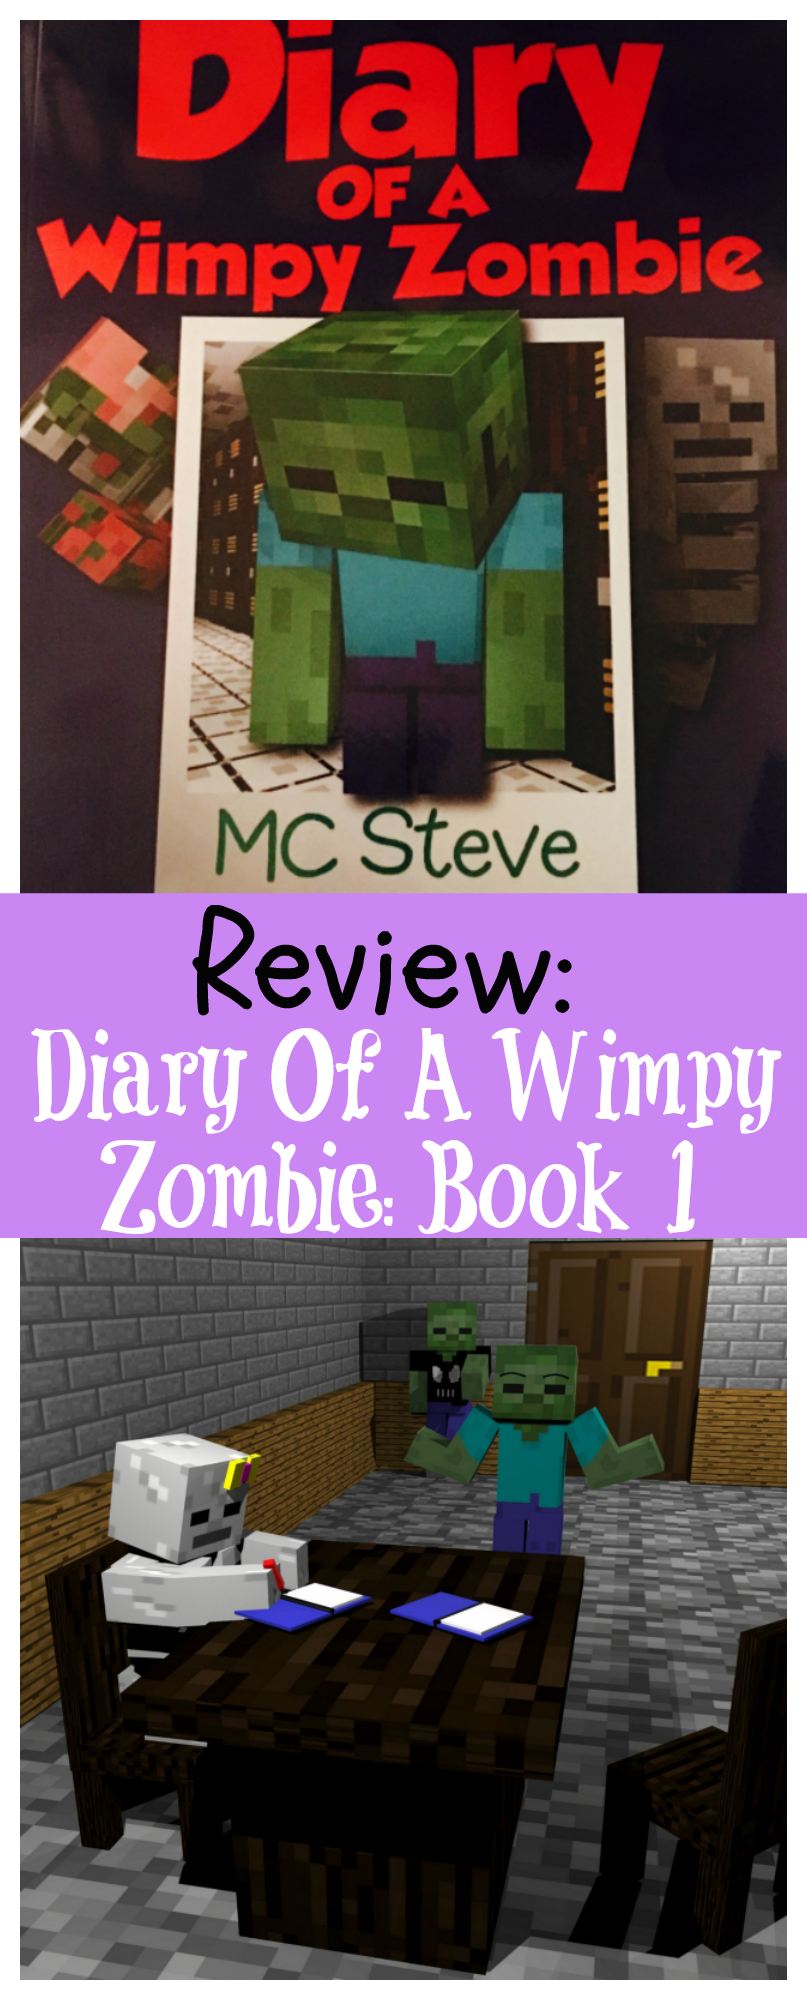 Review: Diary Of A Wimpy Zombie Book 1